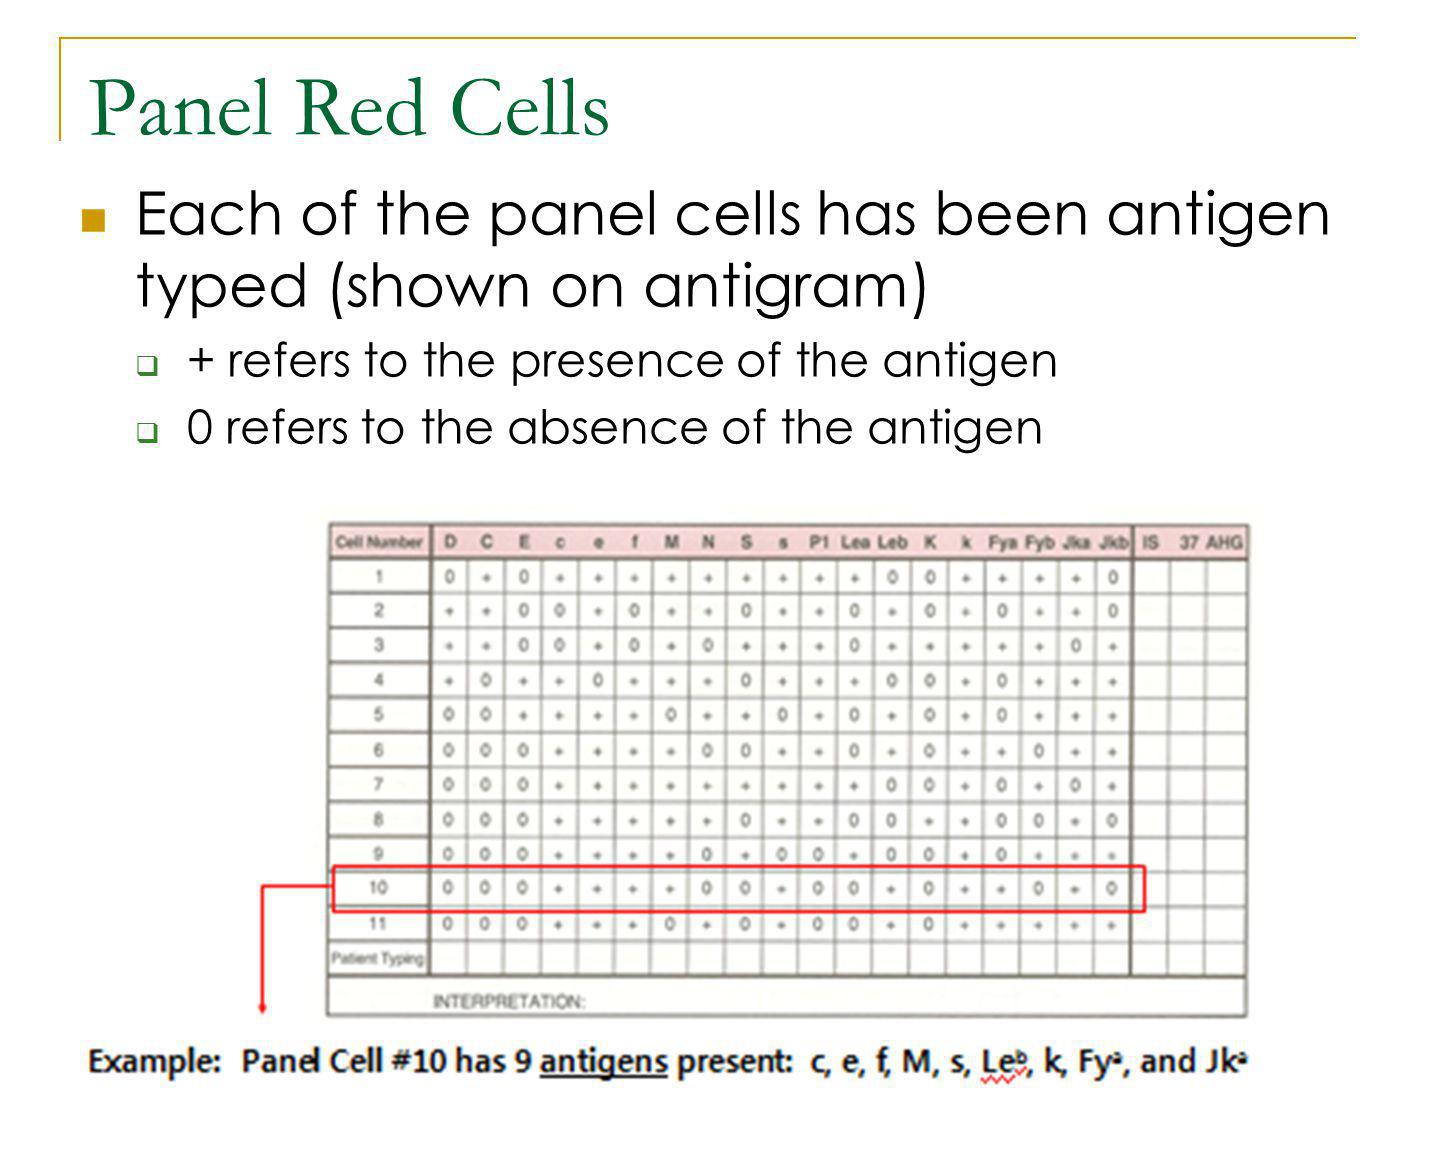 Panel Red Cells Each of the panel cells has been antigen typed (shown on antigram) + refers to the presence of the antigen.